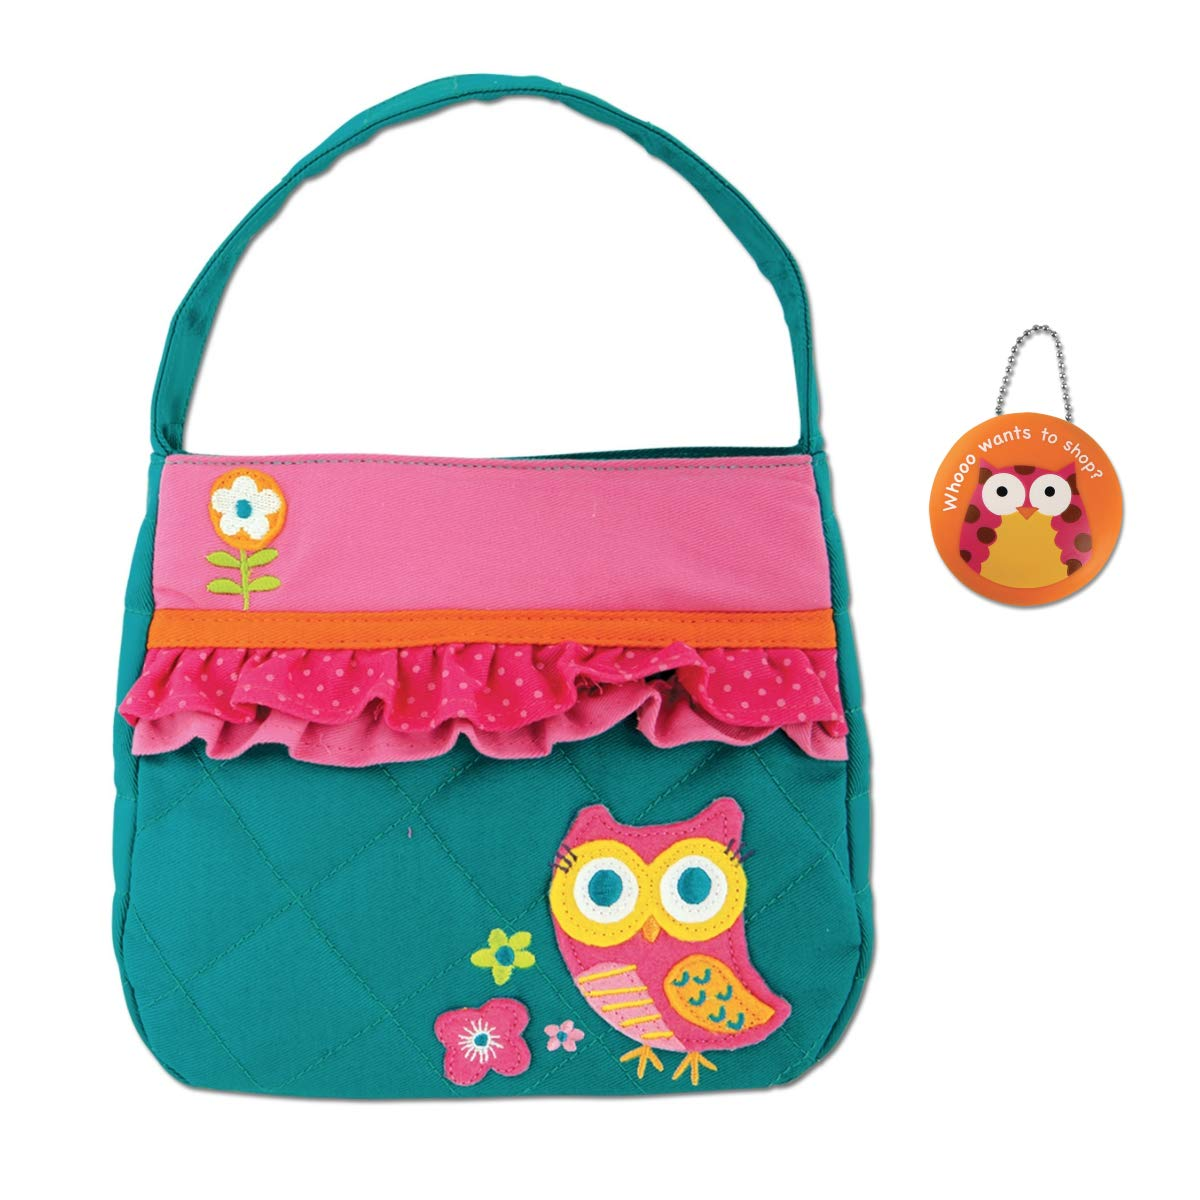 Stephen Joseph Quilted Owl Purse with Owl Coin Holder - Little Girls Purses